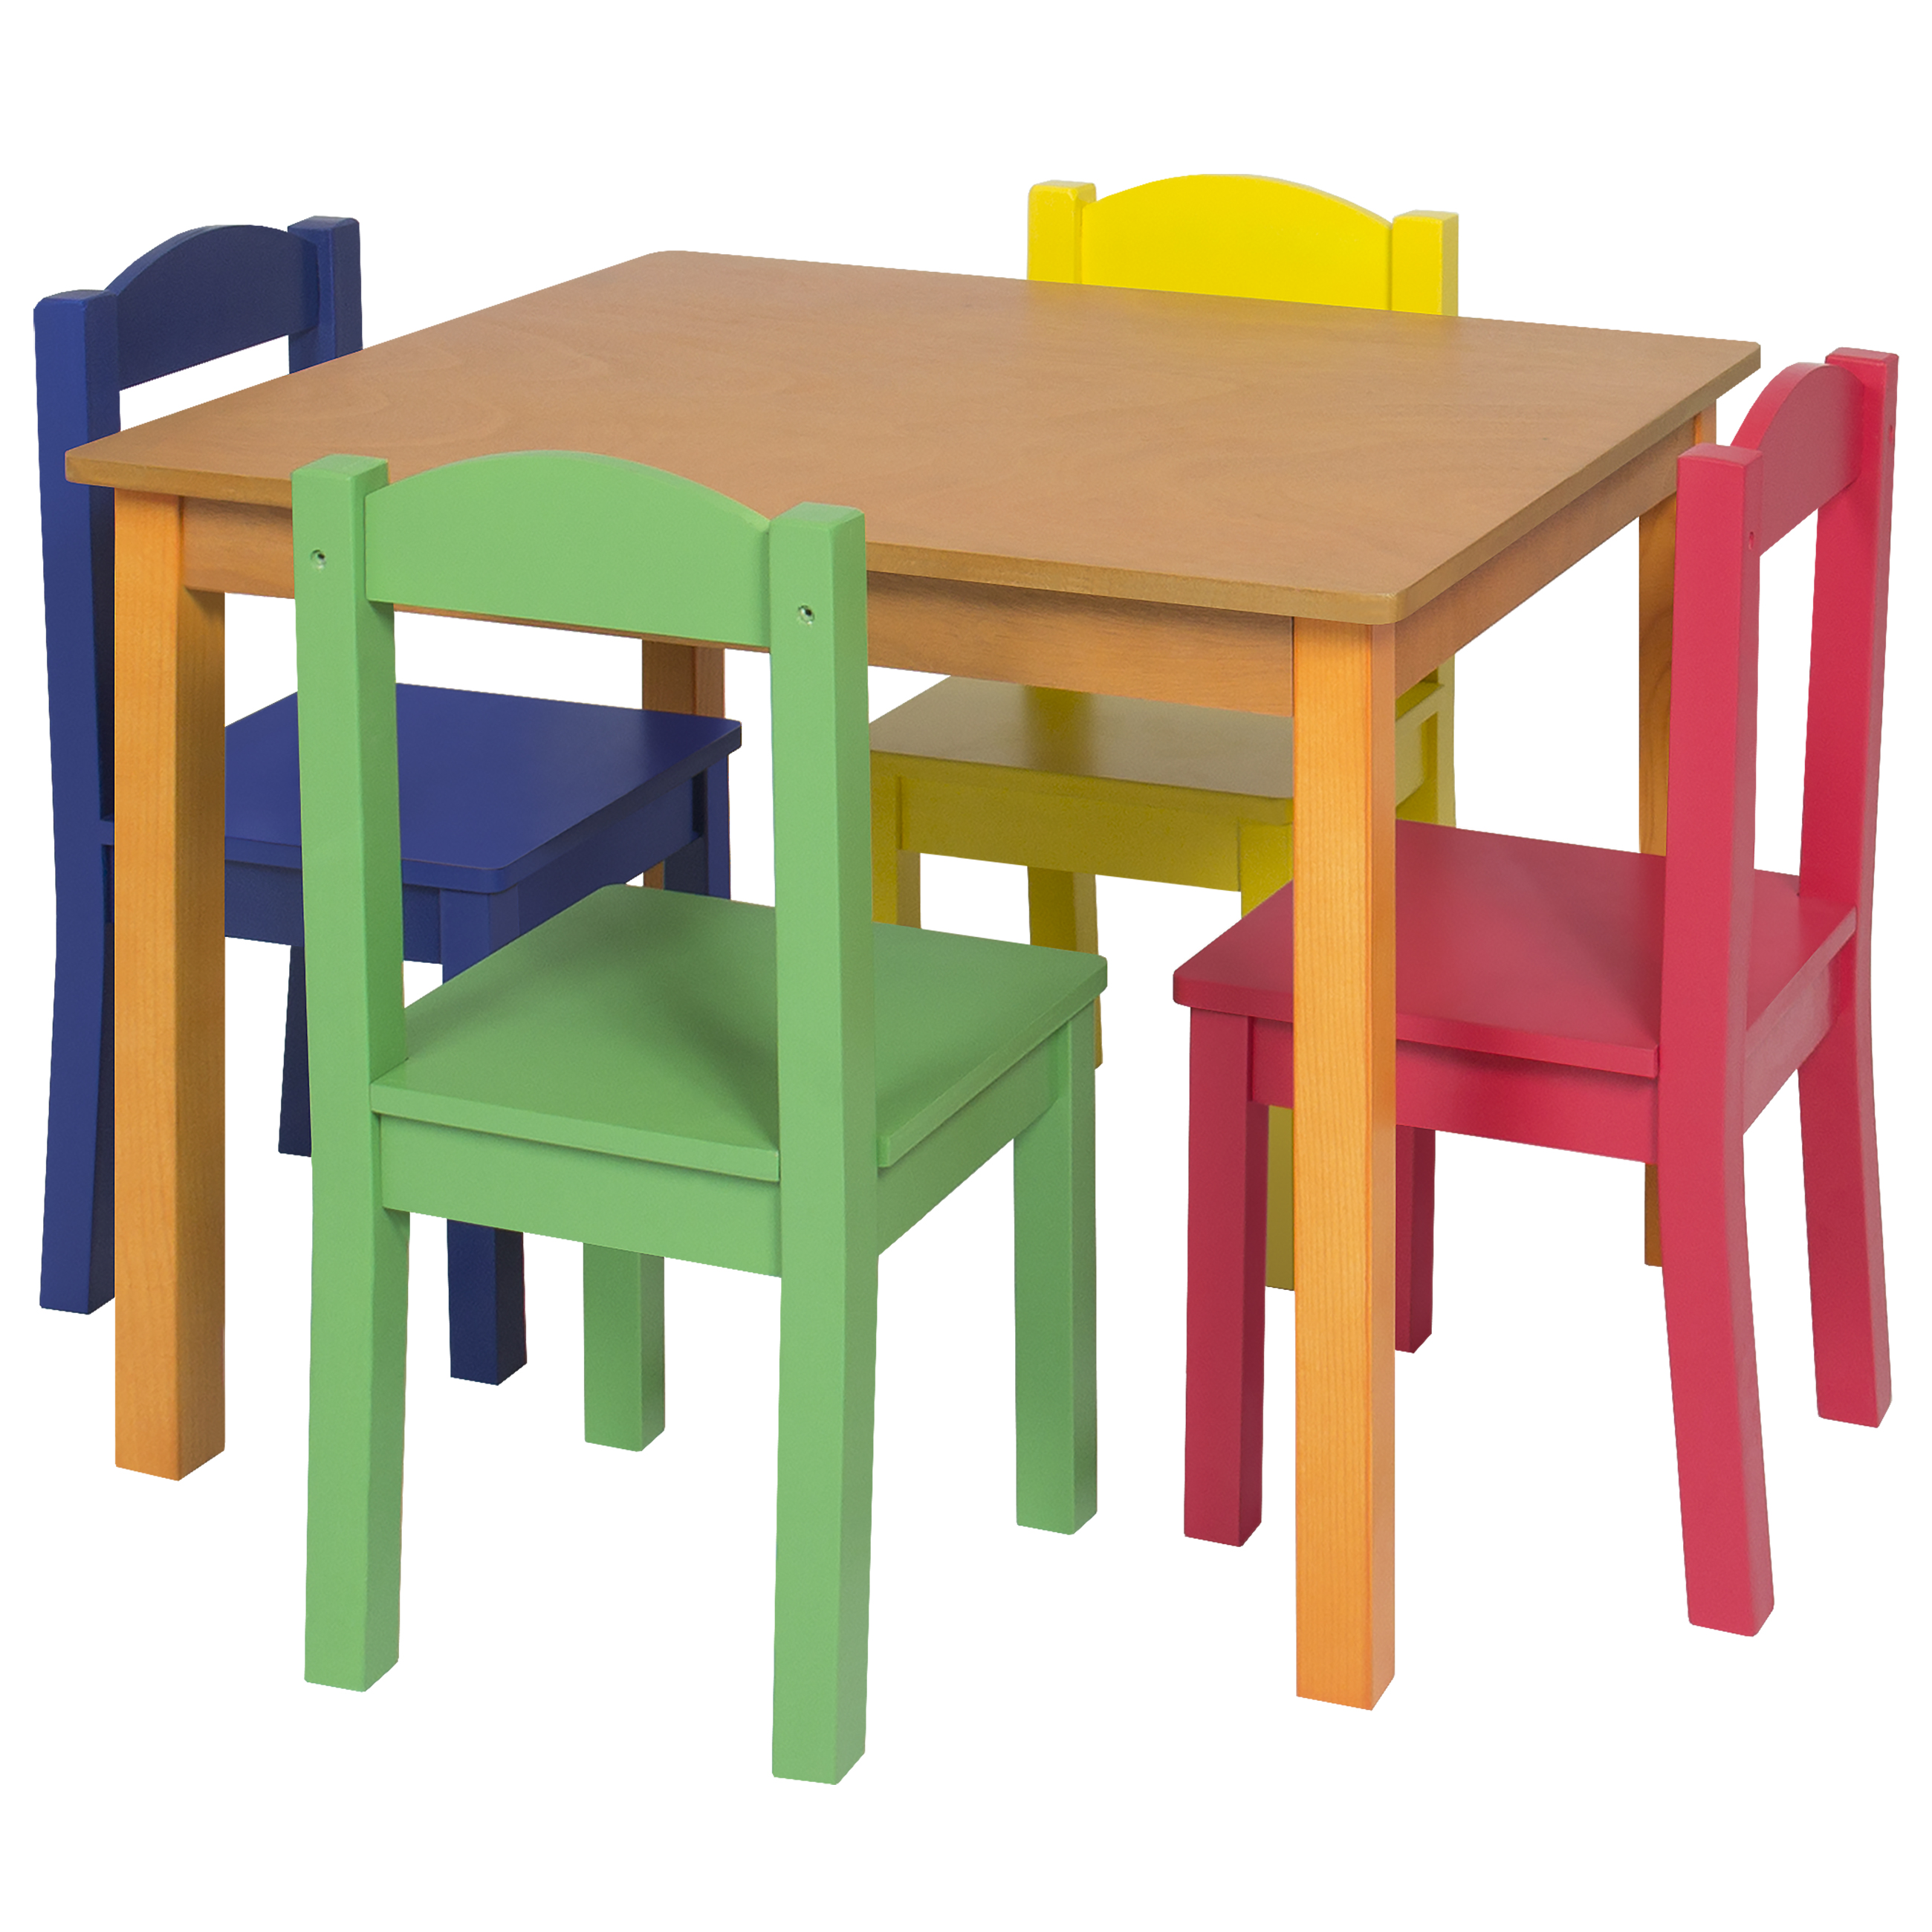 Kids wooden table and 4 chair set furniture primary for Table and 4 chairs set